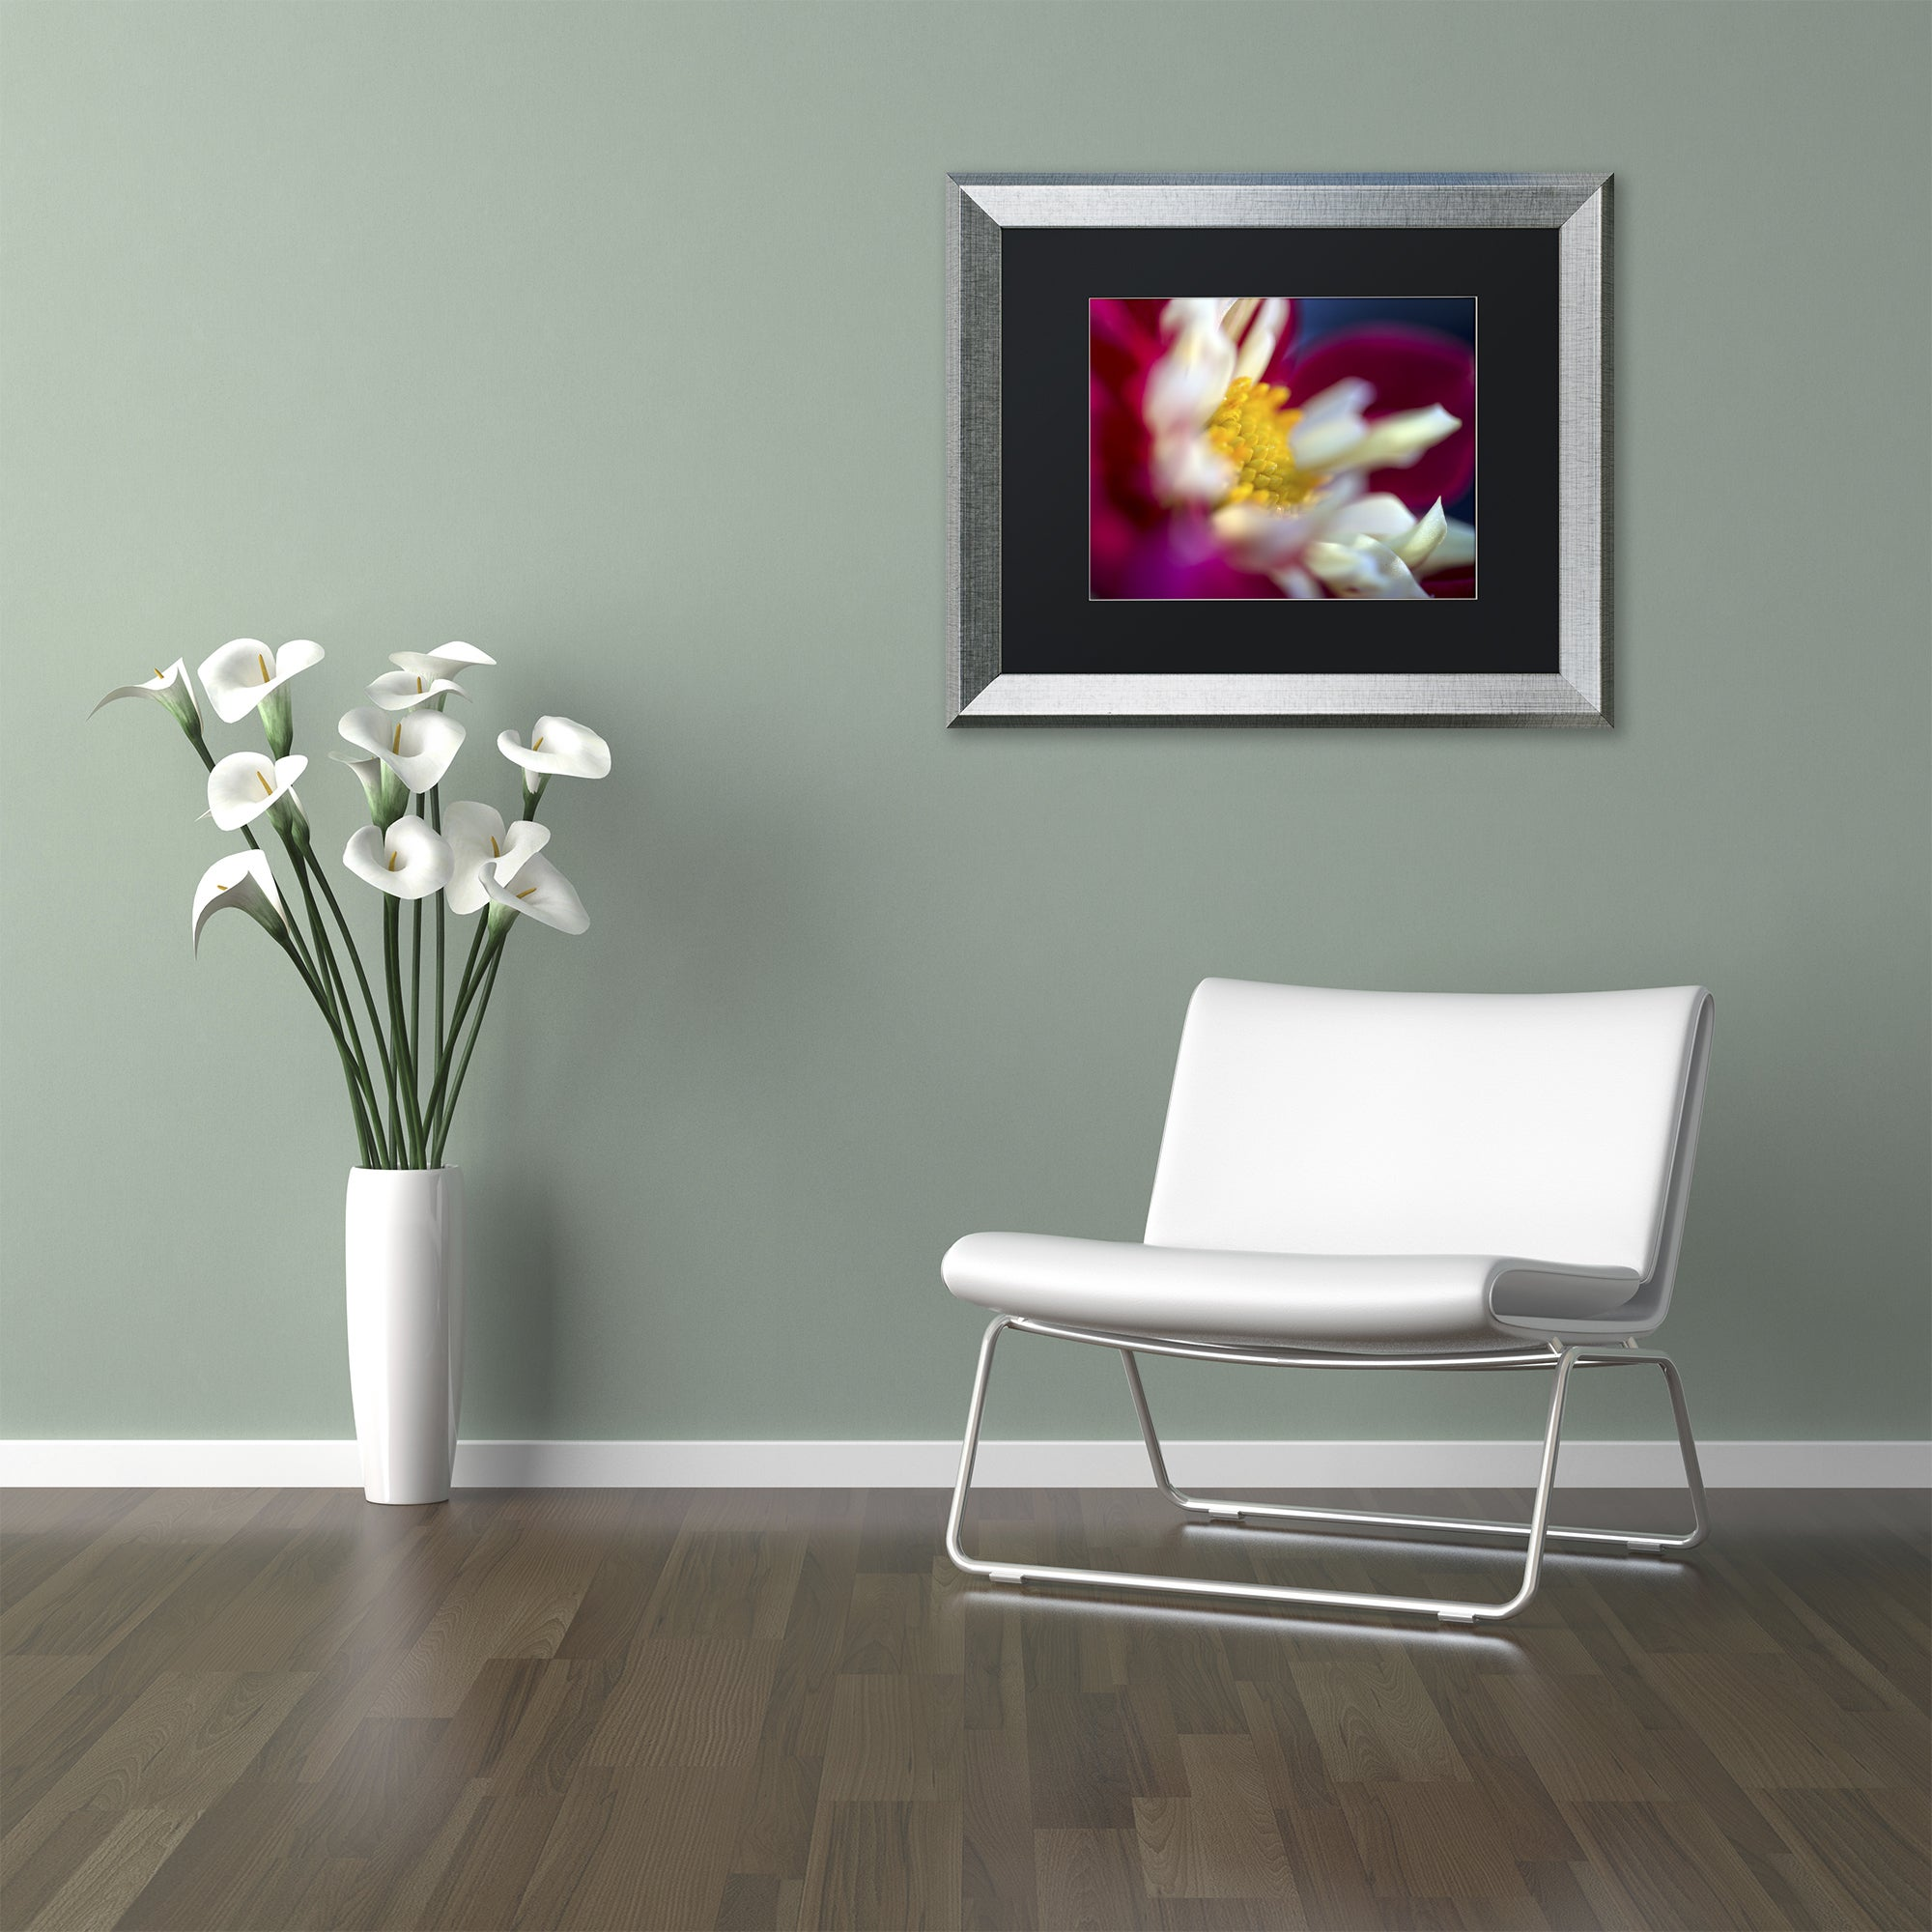 Kurt Shaffer A Different Kind Of Dahlia Matted Framed Art Overstock 12052061